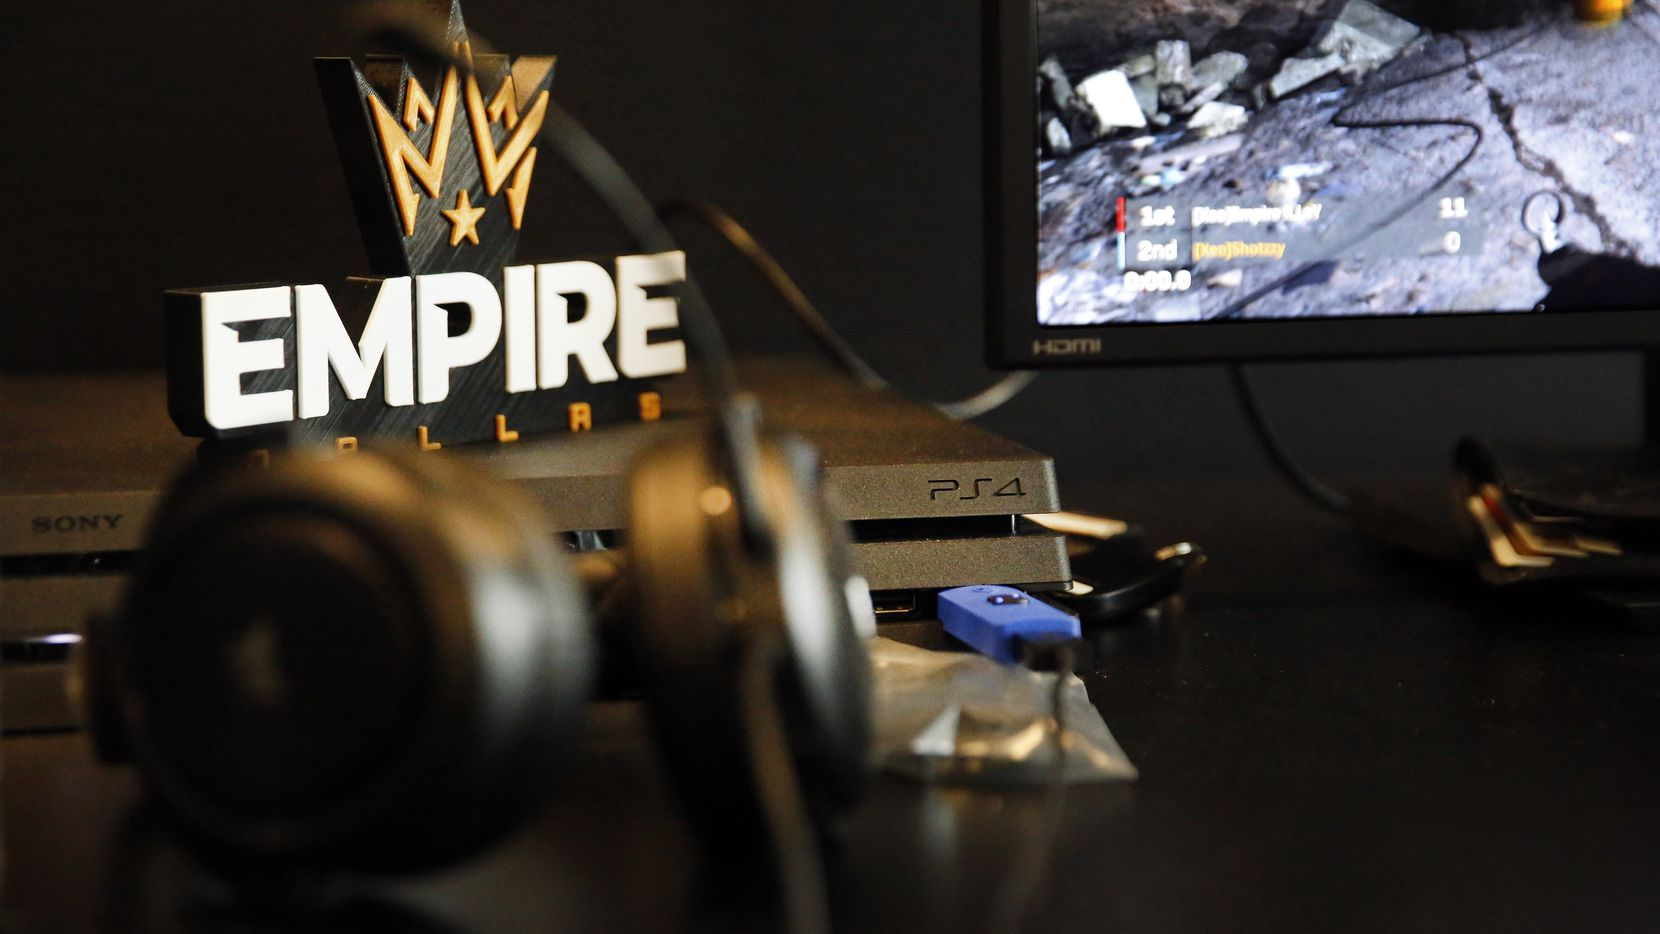 Dallas Empire, a new Call of Duty League franchise, is setting up their new Dallas offices in Victory Park, Wednesday, January 15, 2020. The team of 7 began practice this week in anticipation of the Jan. 24 season opener. (Tom Fox/The Dallas Morning News)